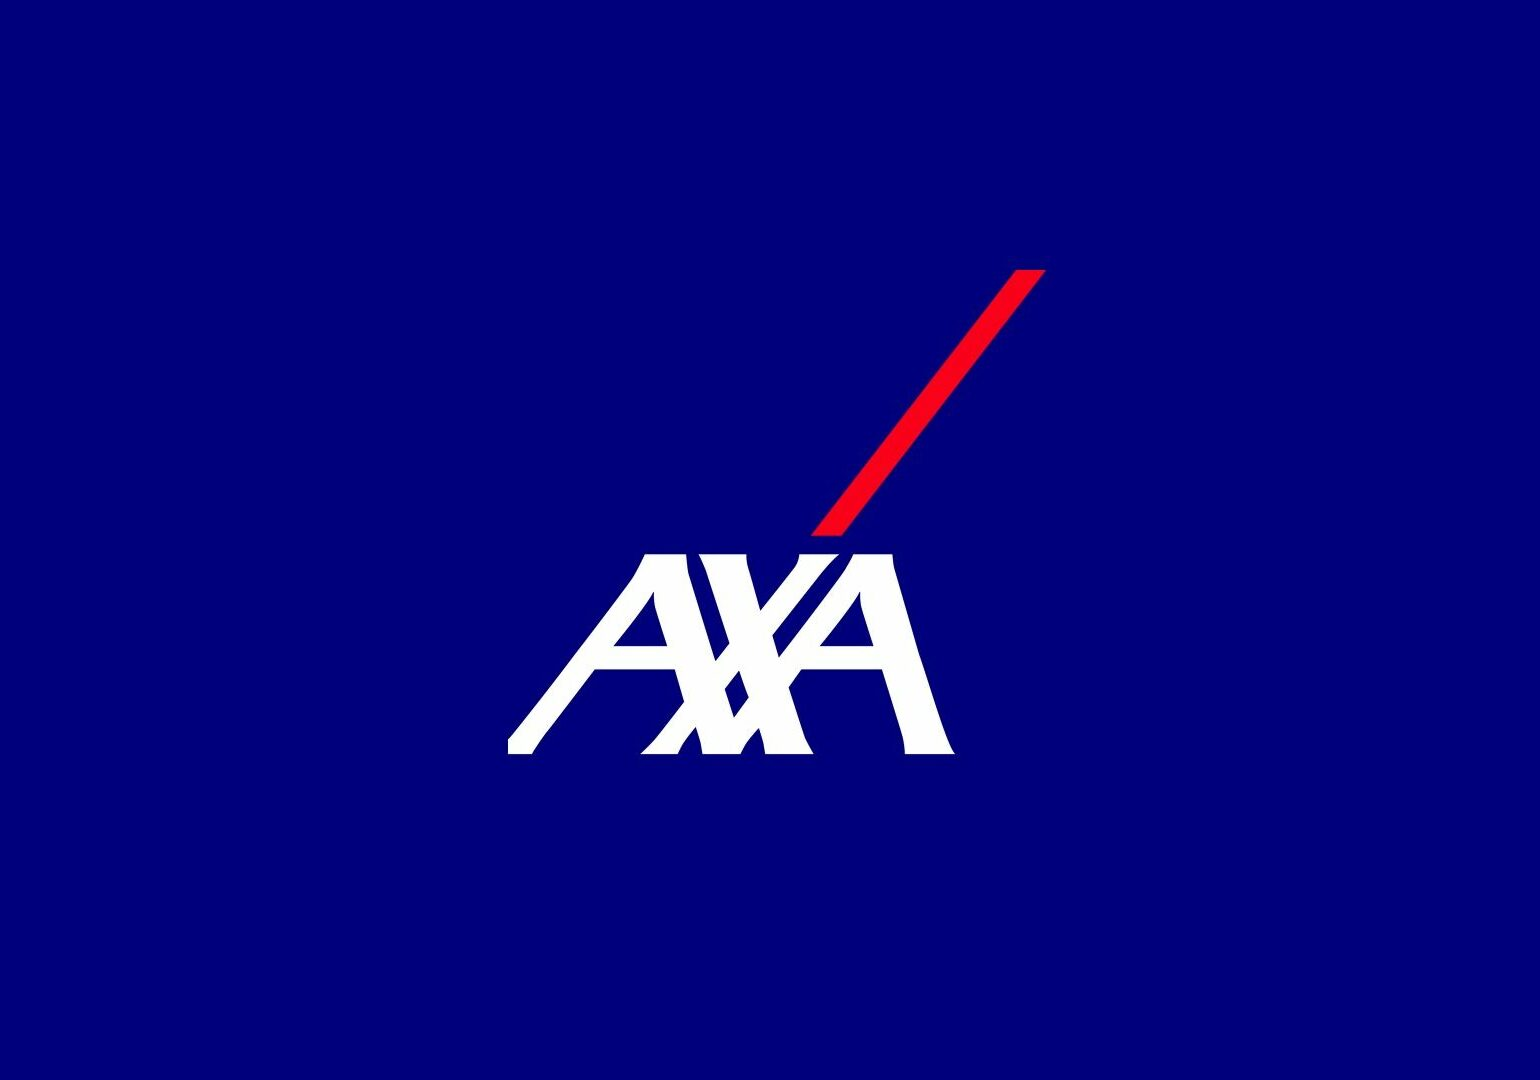 AXA - One of the best insurance companies for expats in Thailand